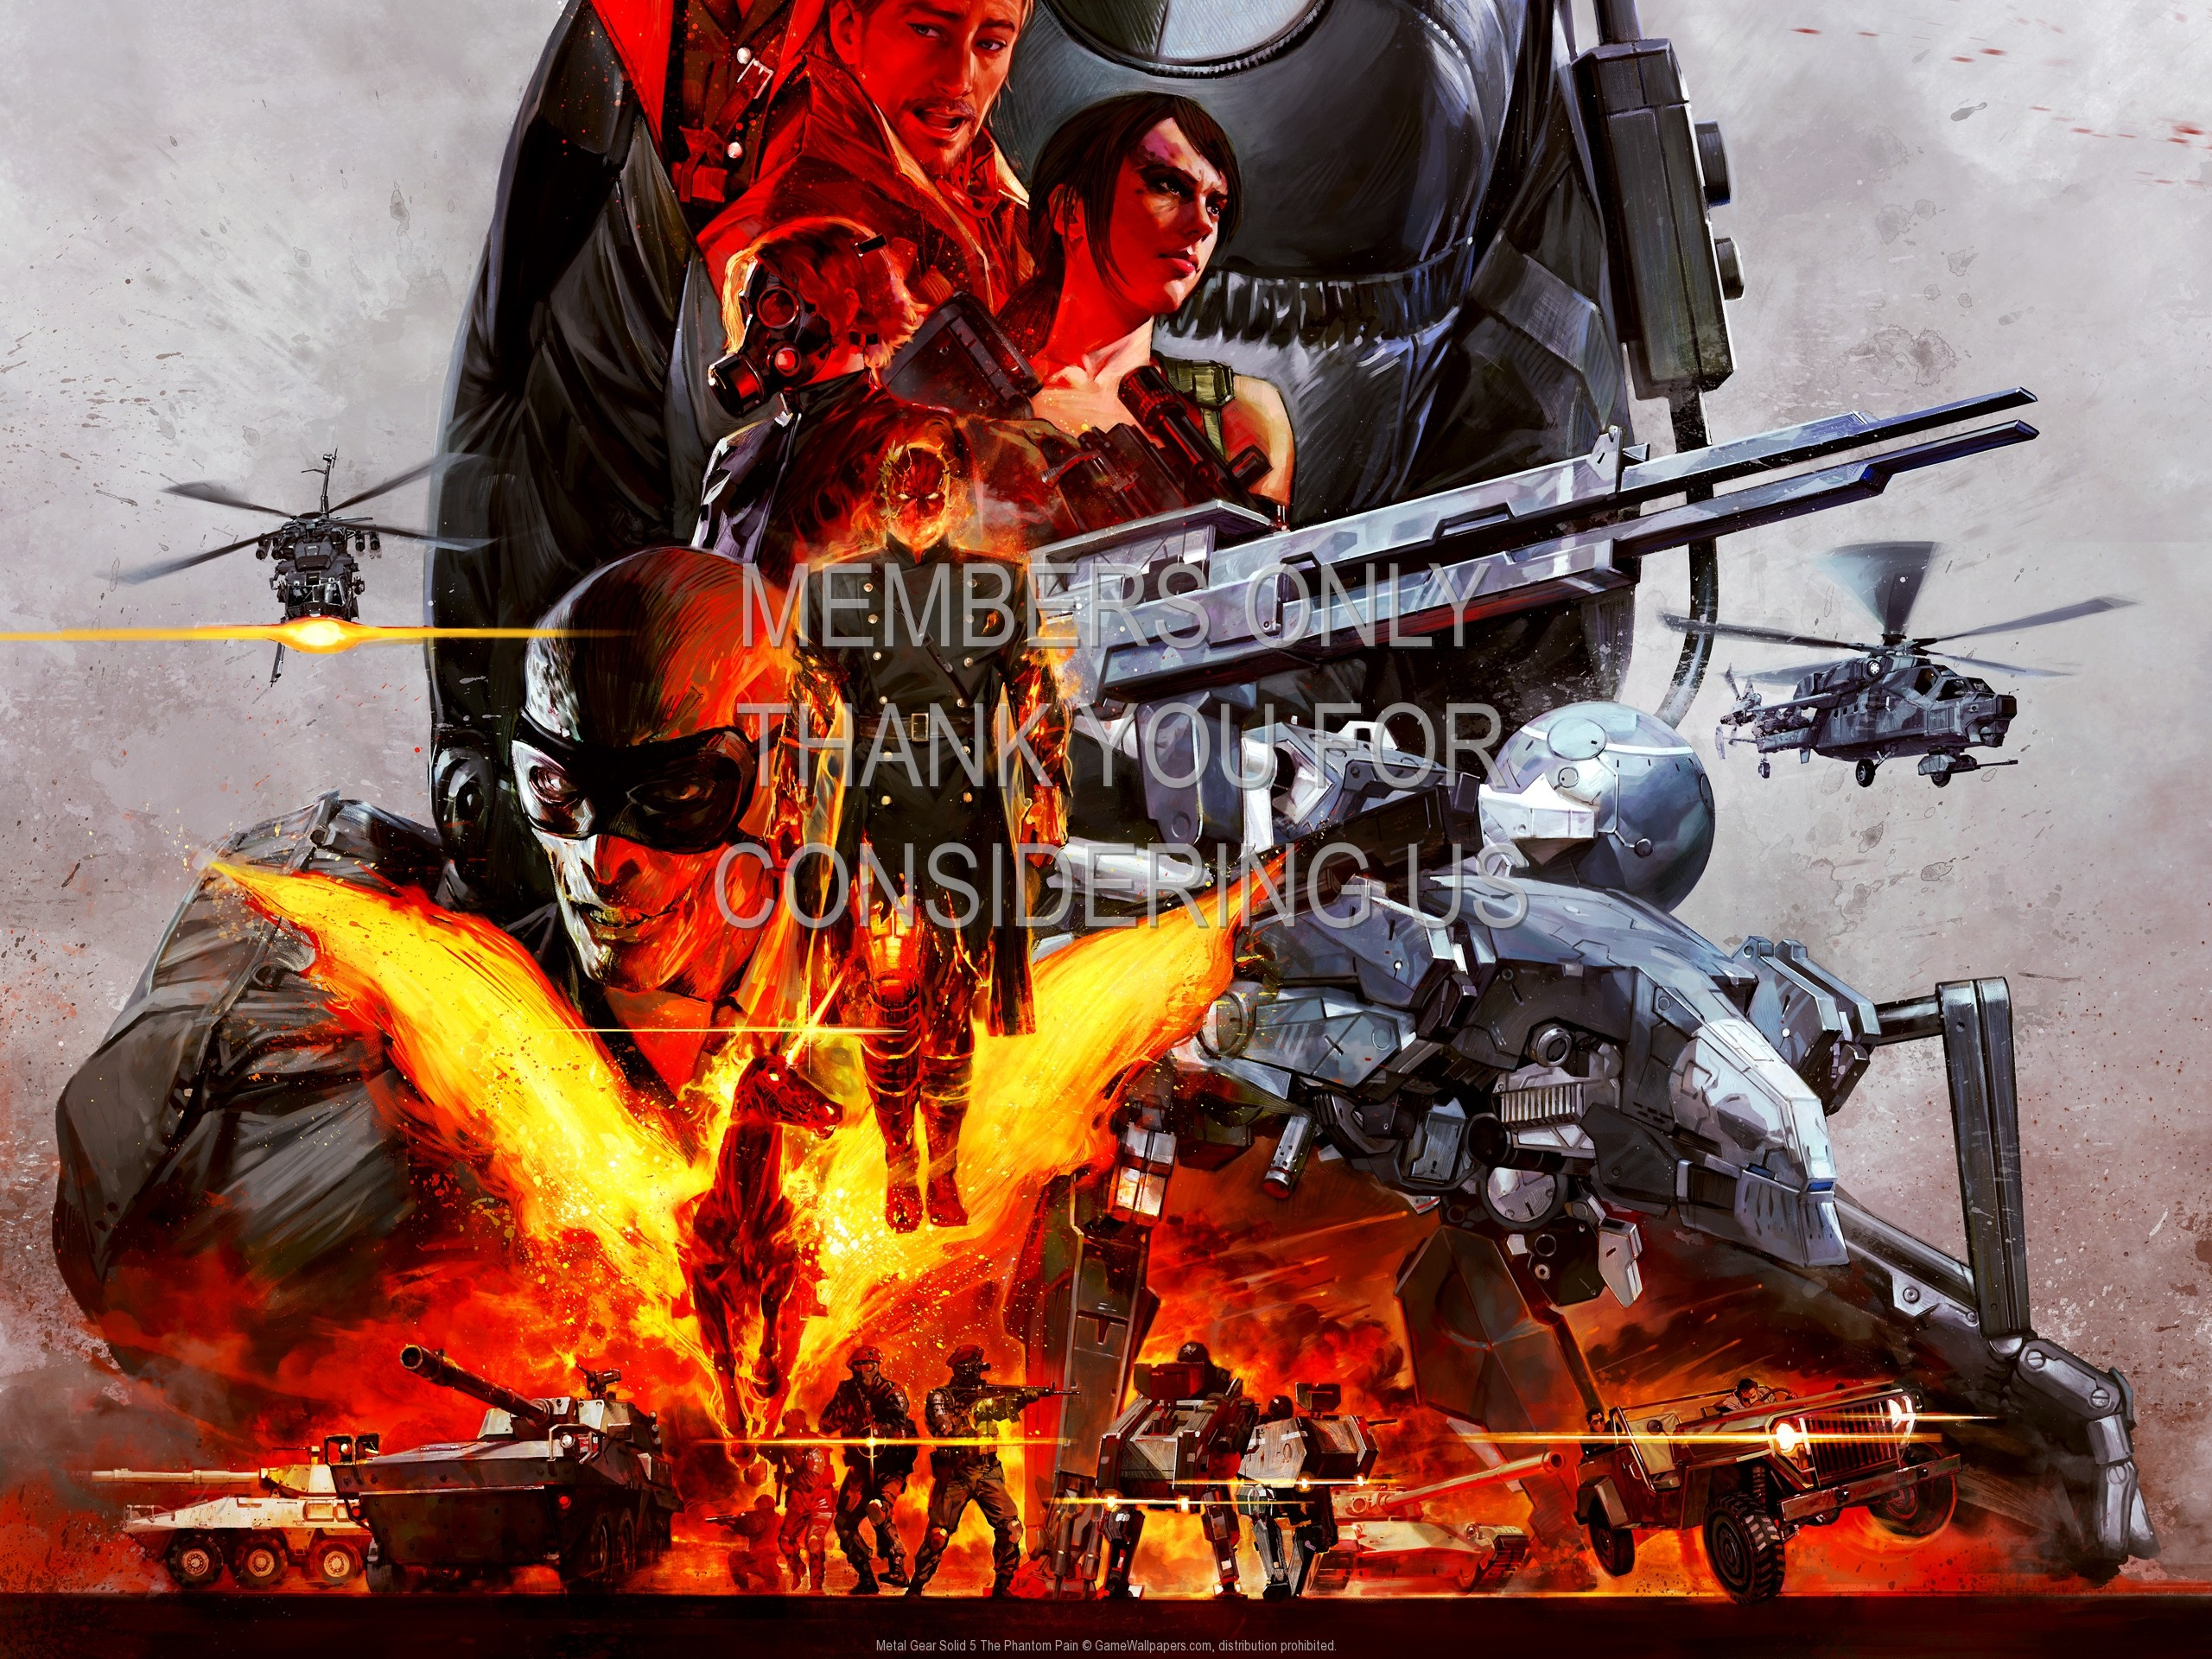 Metal Gear Solid 5: The Phantom Pain 1920×1080 Mobile wallpaper or  background 02